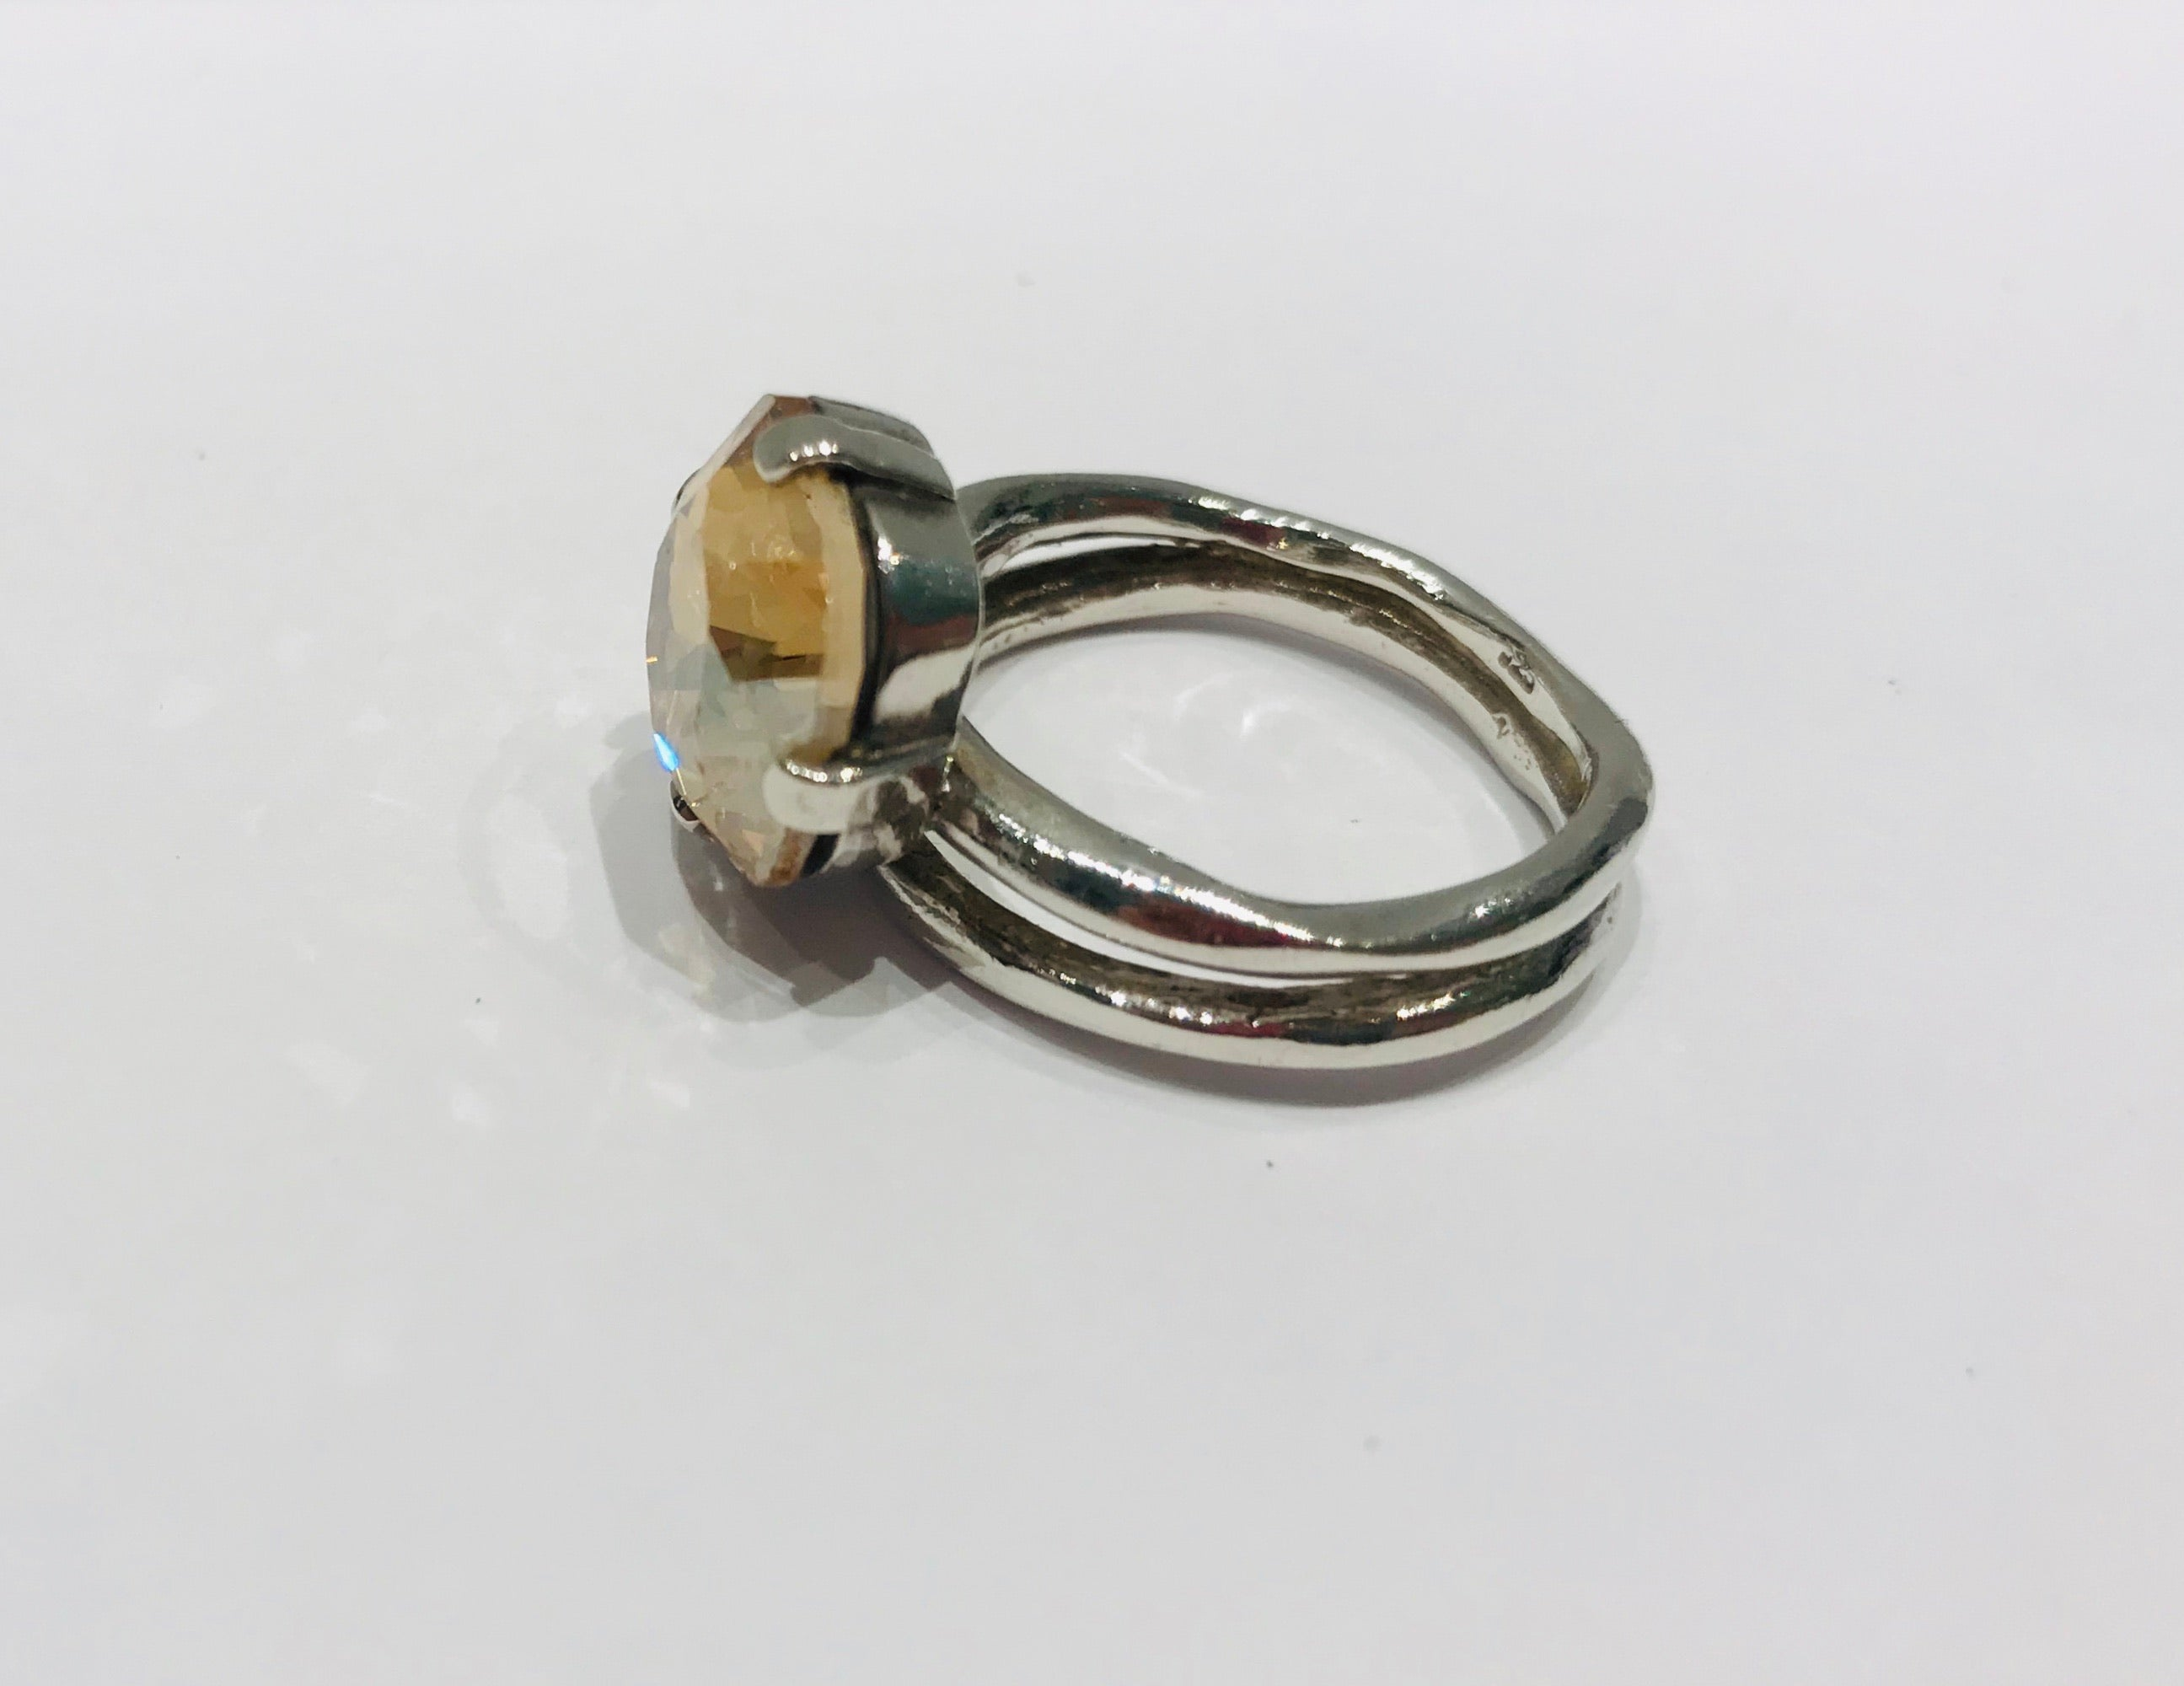 Wouters & Hendrix silver ring with cristal stone